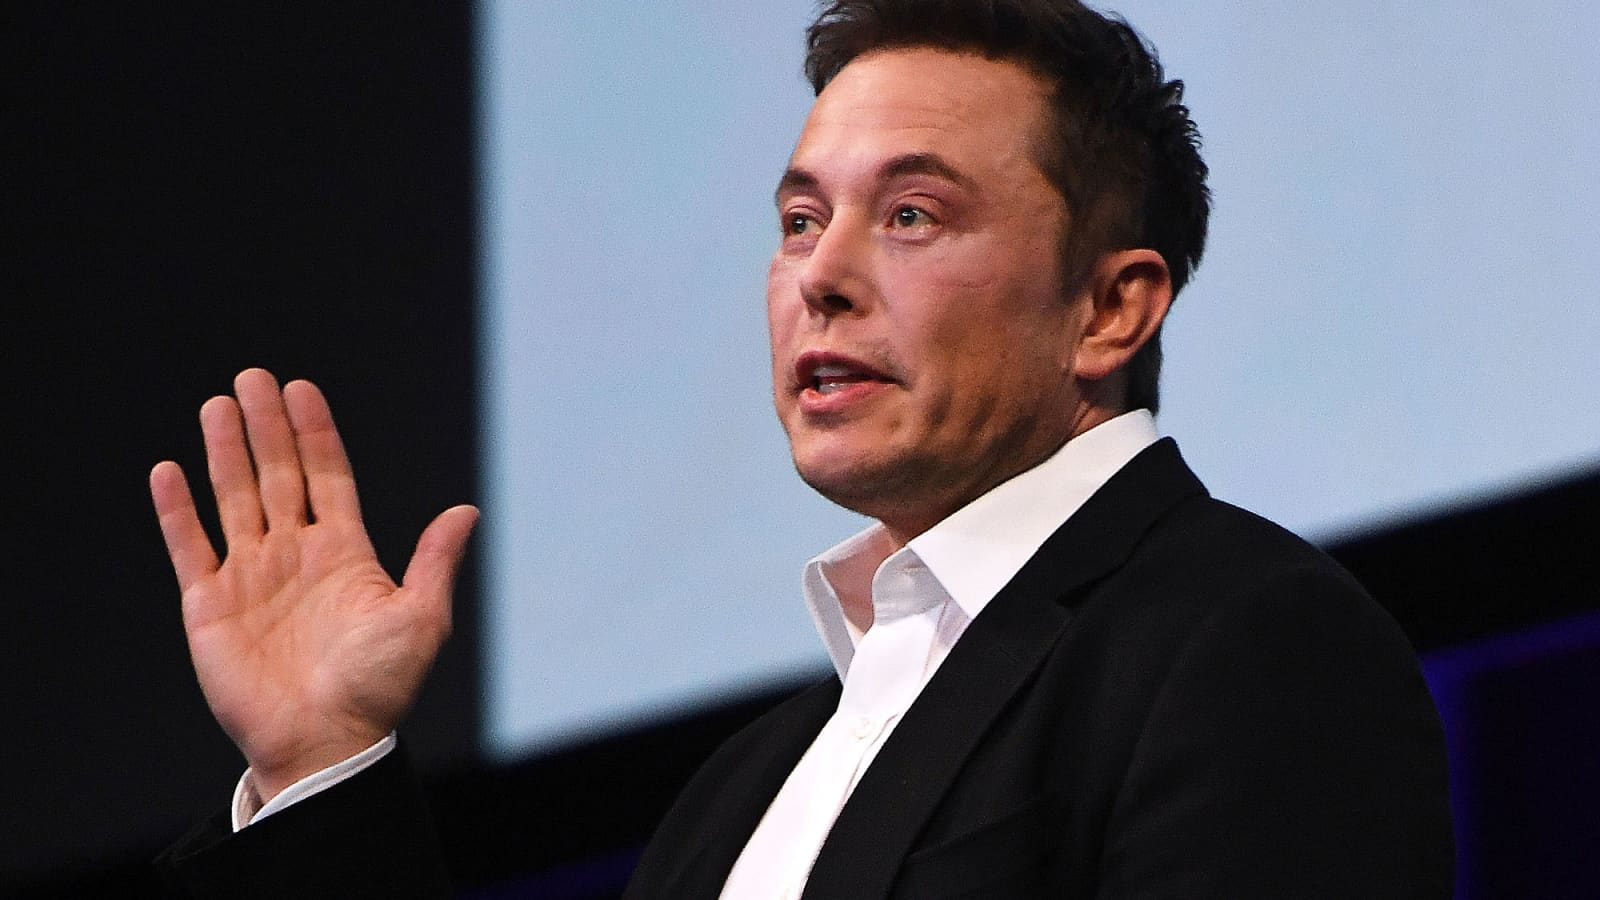 How Elon Musk Founded Zip2 With His Brother Kimbal